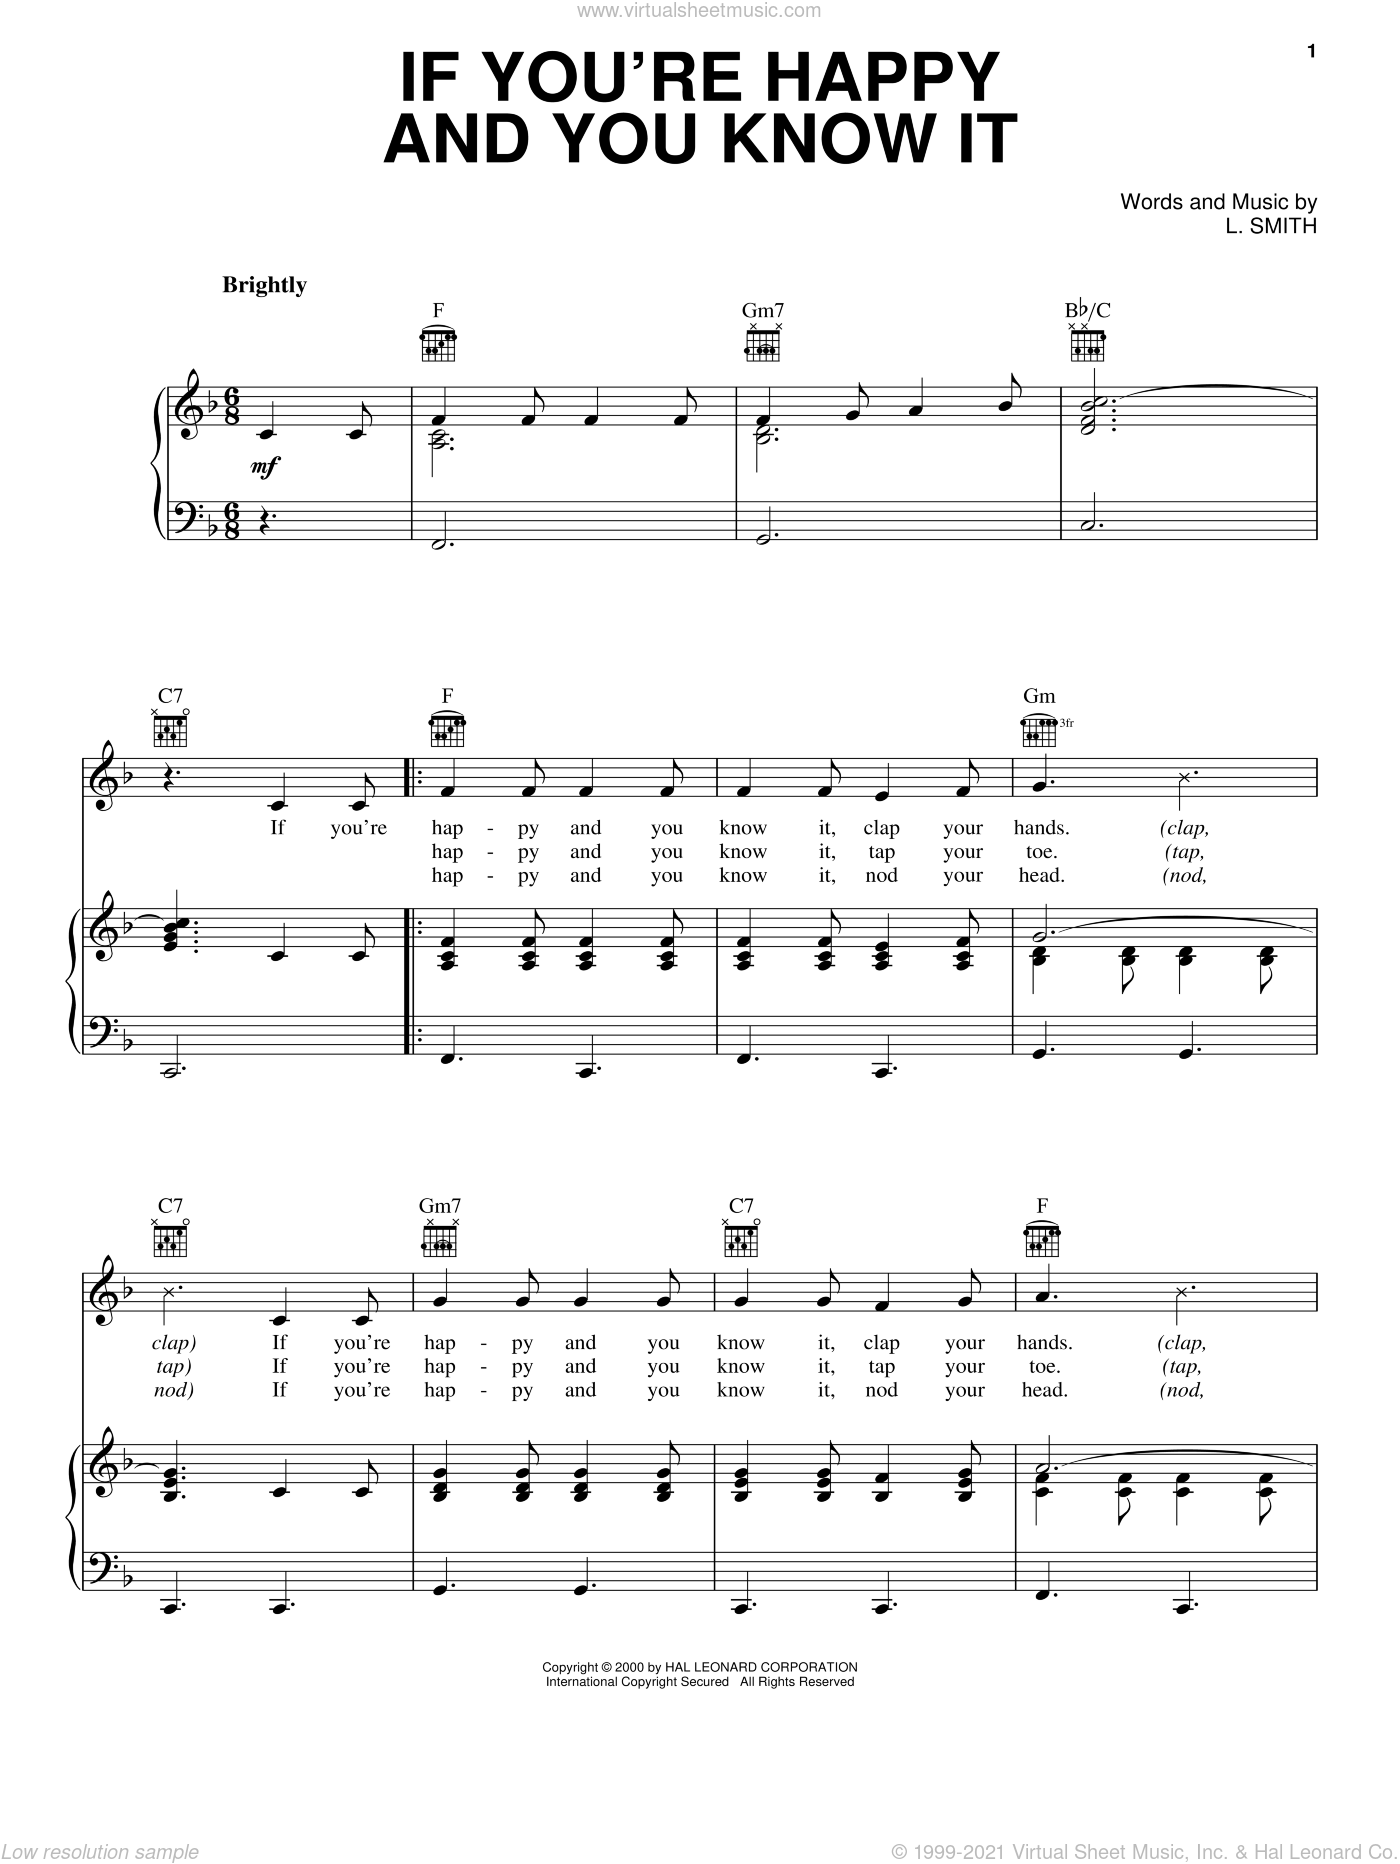 If You're Happy And You Know It sheet music for voice, piano or guitar by Laura Smith, intermediate. Score Image Preview.